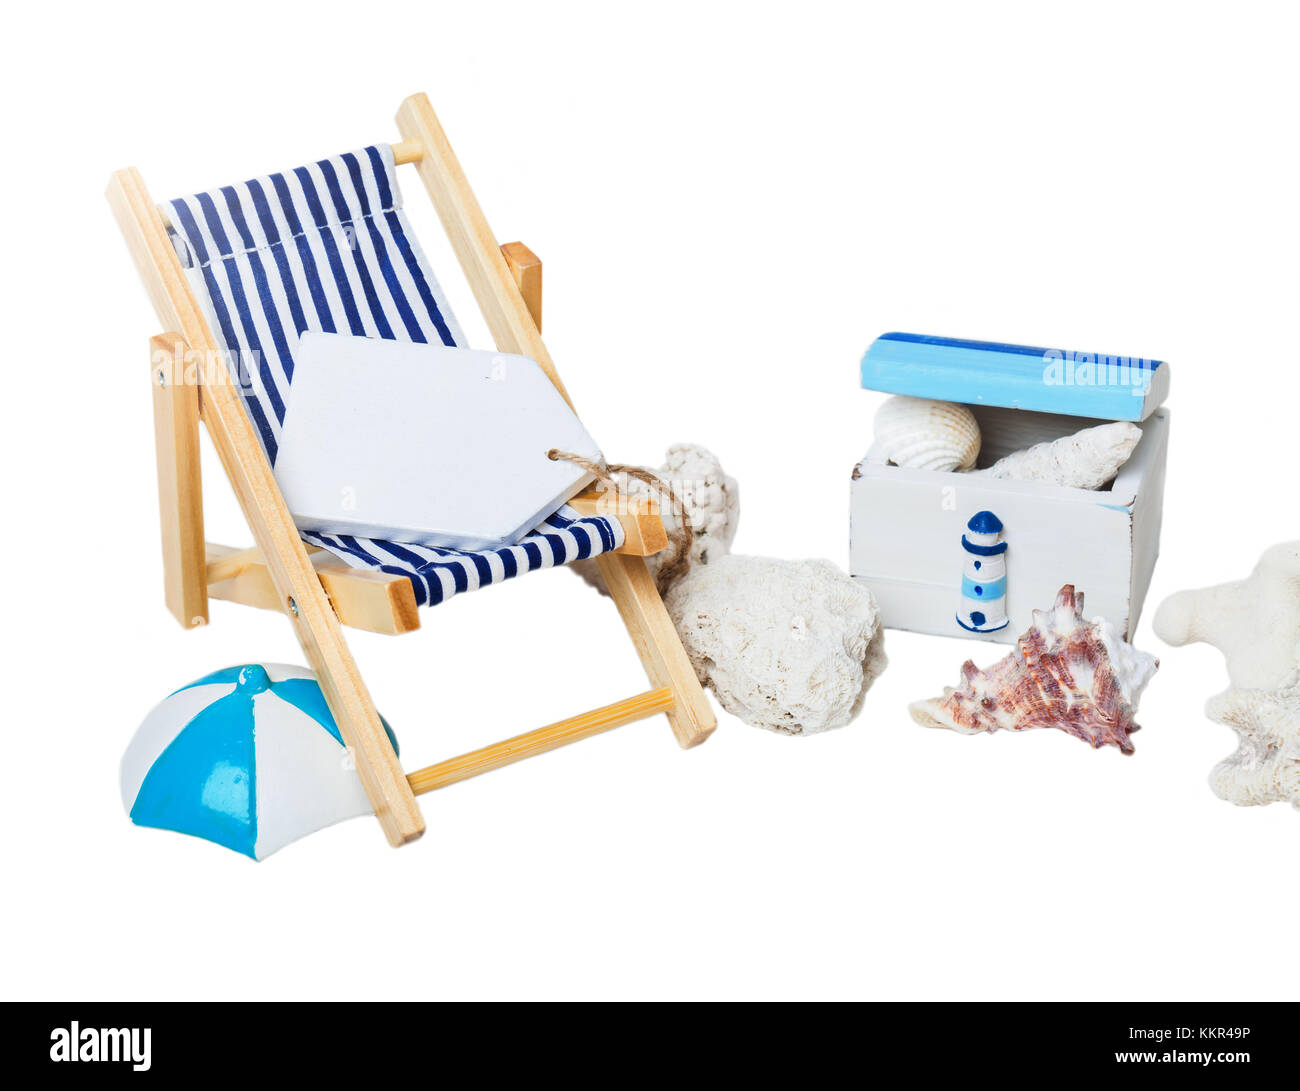 Summer, vacation, beach, deck chair - Stock Image